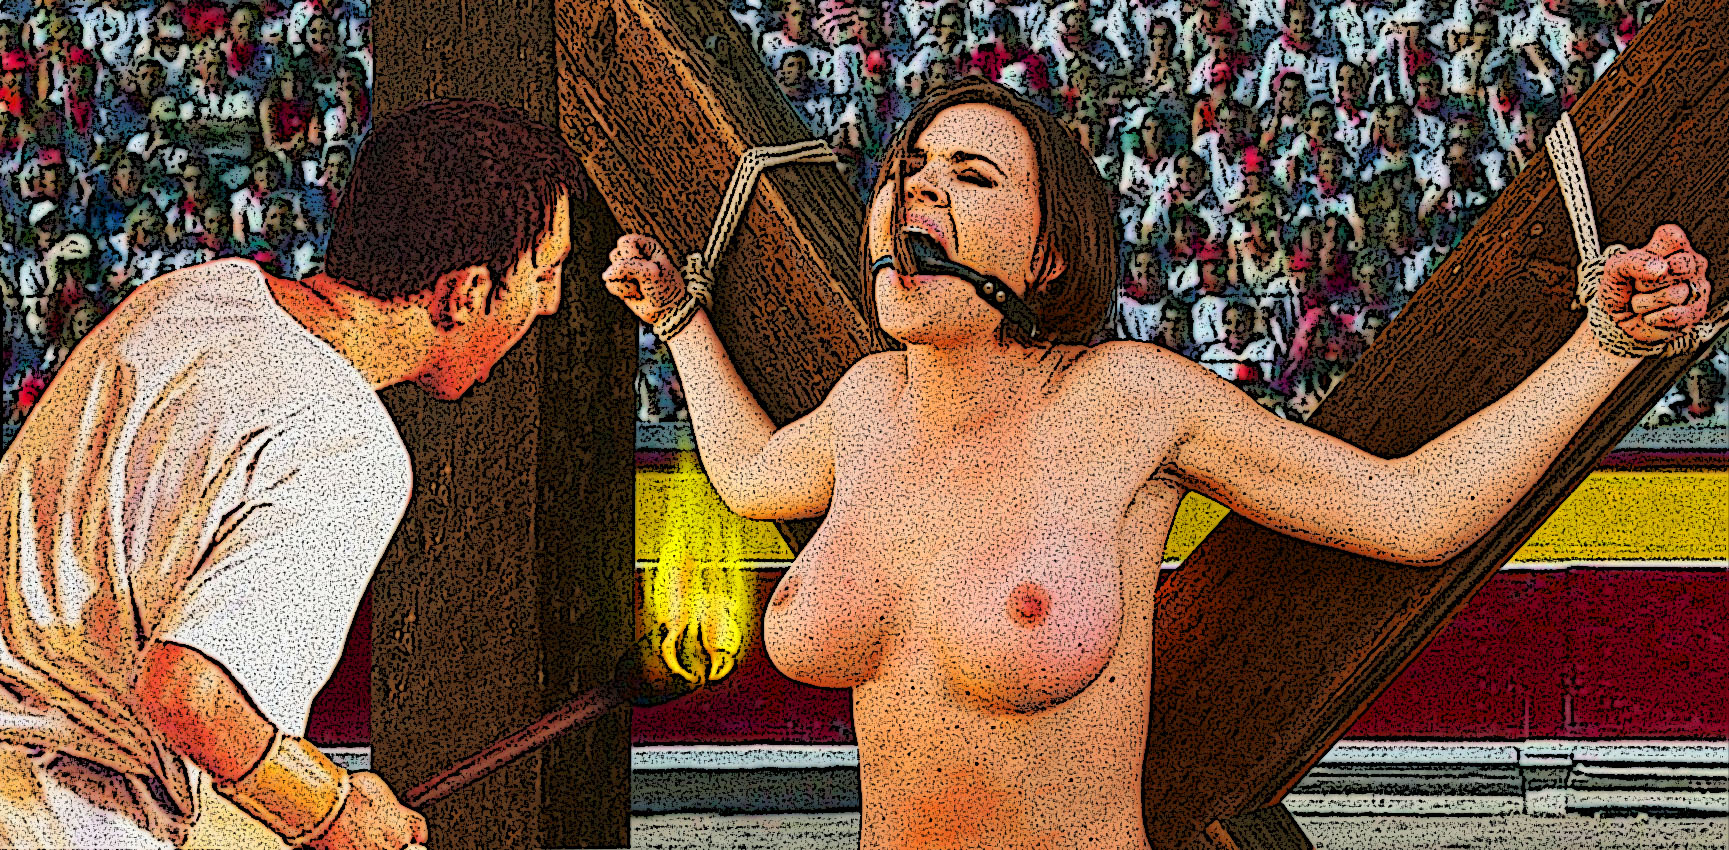 Bdsm naked executions adult picture